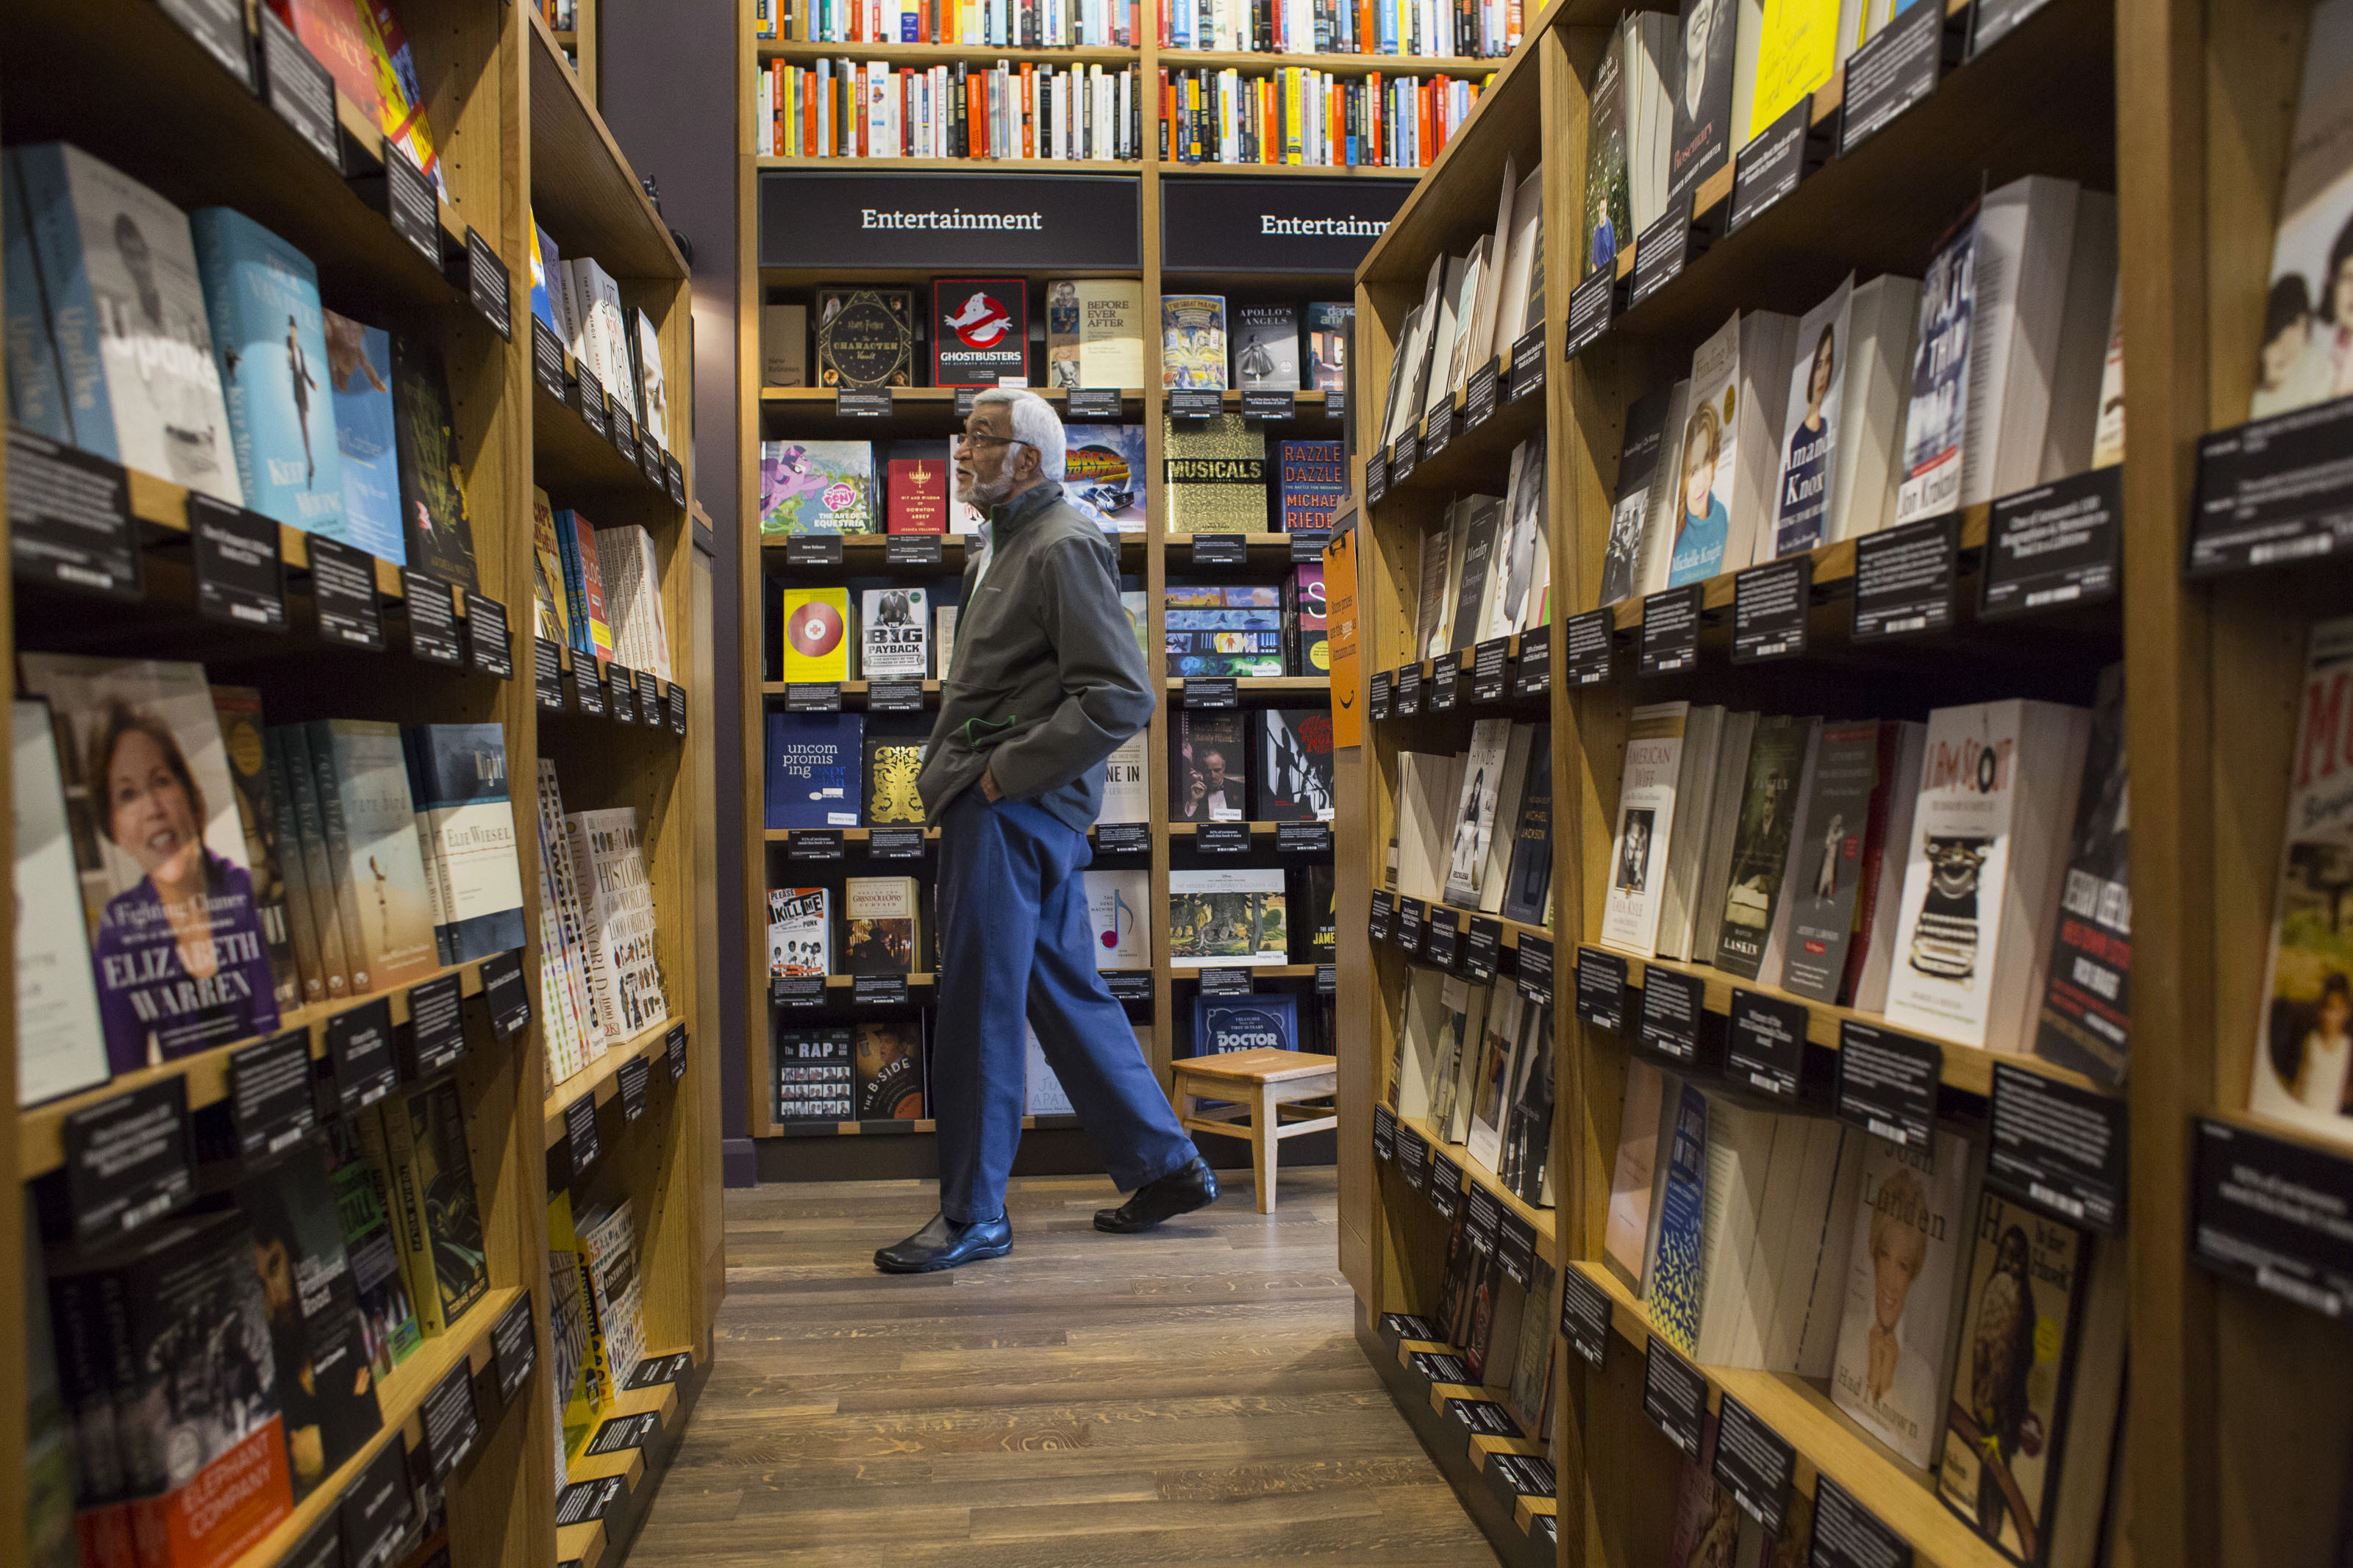 Inside The First Amazon.com Inc. Brick And Mortar Bookstore